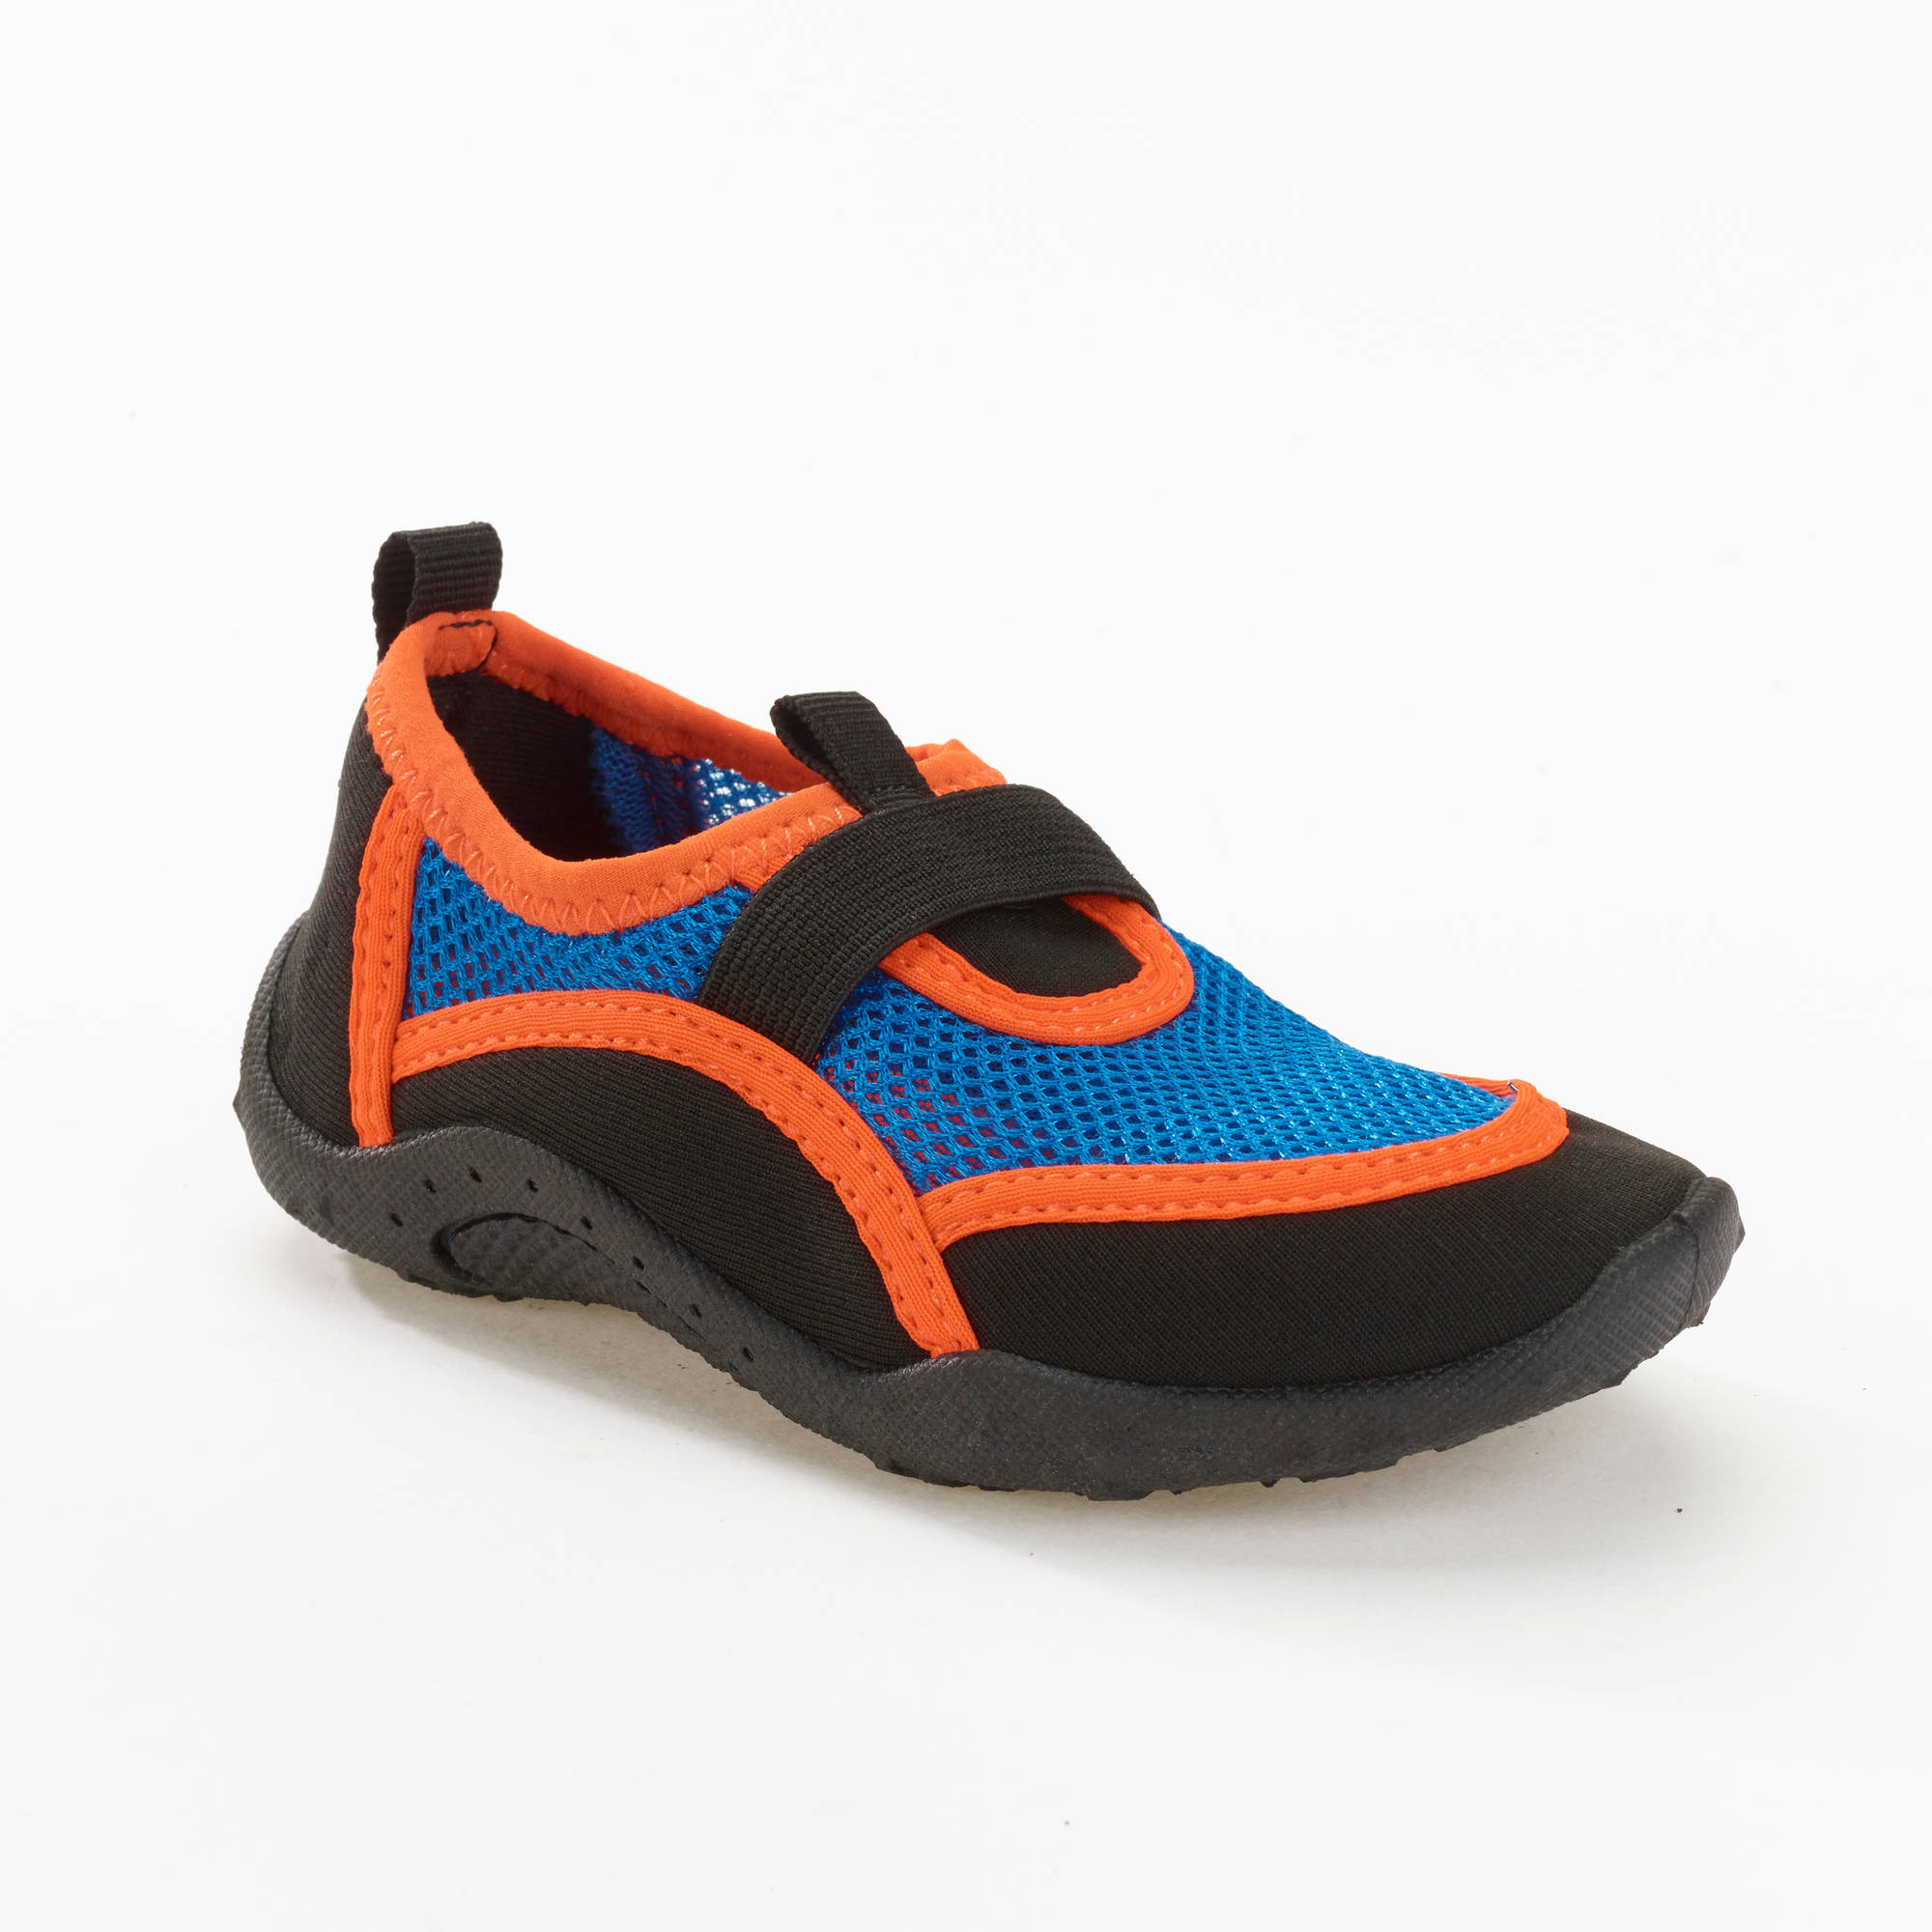 Free shipping BOTH ways on Shoes, Boys, from our vast selection of styles. Fast delivery, and 24/7/ real-person service with a smile. Click or call